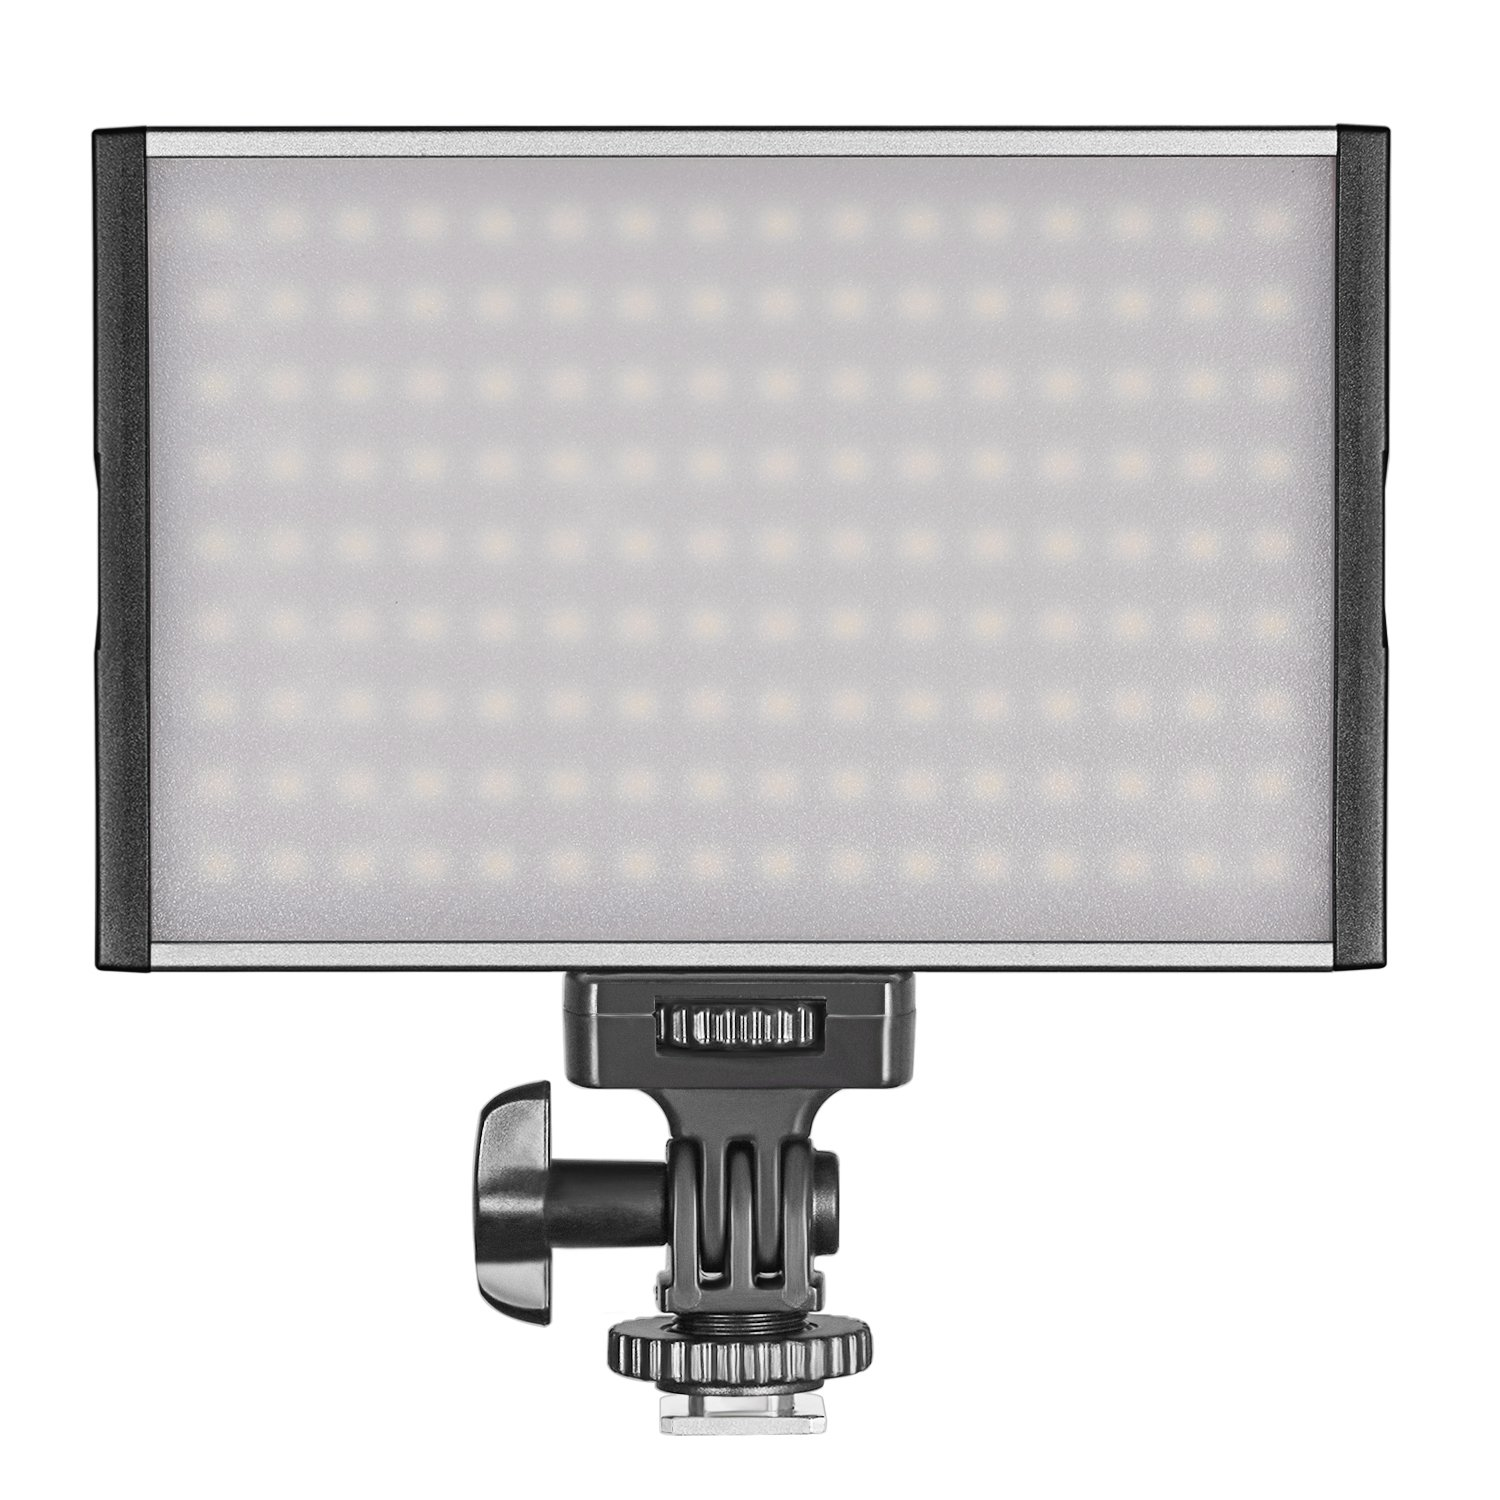 Ultra-thin Bi-color Temperature 3200K-5600K LED Light for Canon Nikon Sony Pentax Panasonic Olympus DSLR Neewer 144 LED PT-15B PRO Dimmable Camera//Camcorder Video Light Panel with Hot Shoe